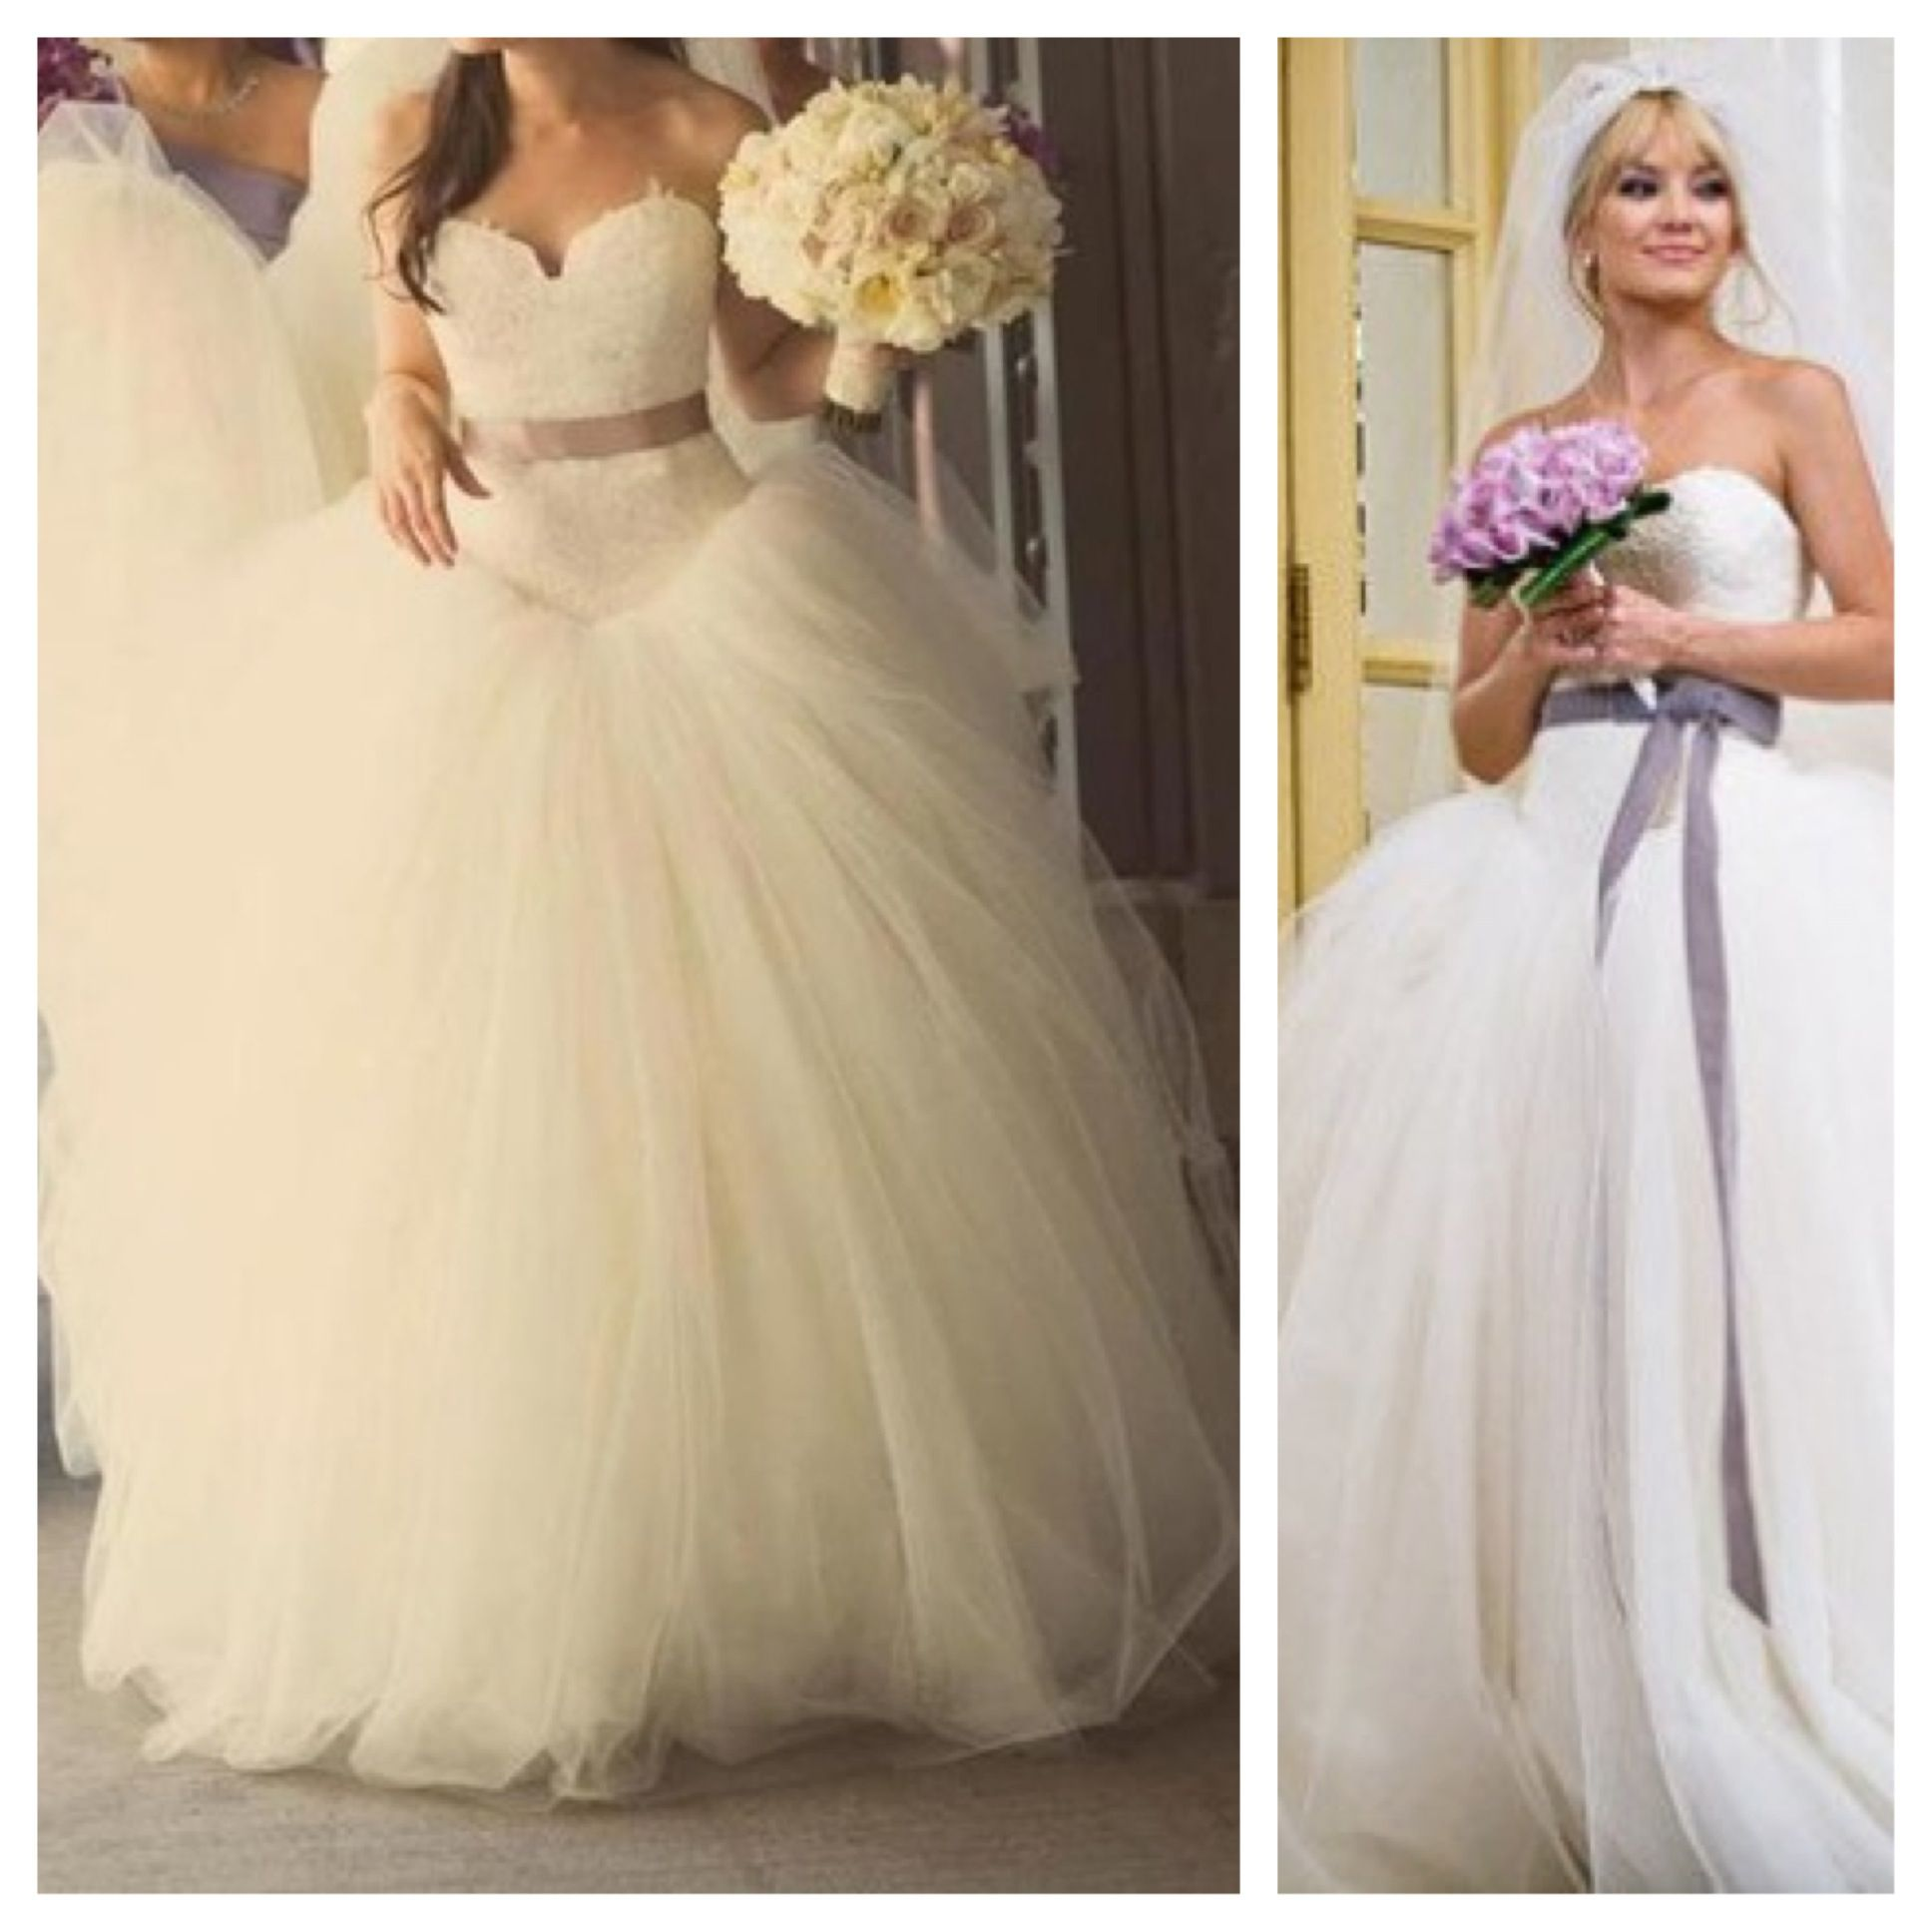 Cheap Wedding Gowns Toronto: Love Kate Hudson's Dress From Bride Wars